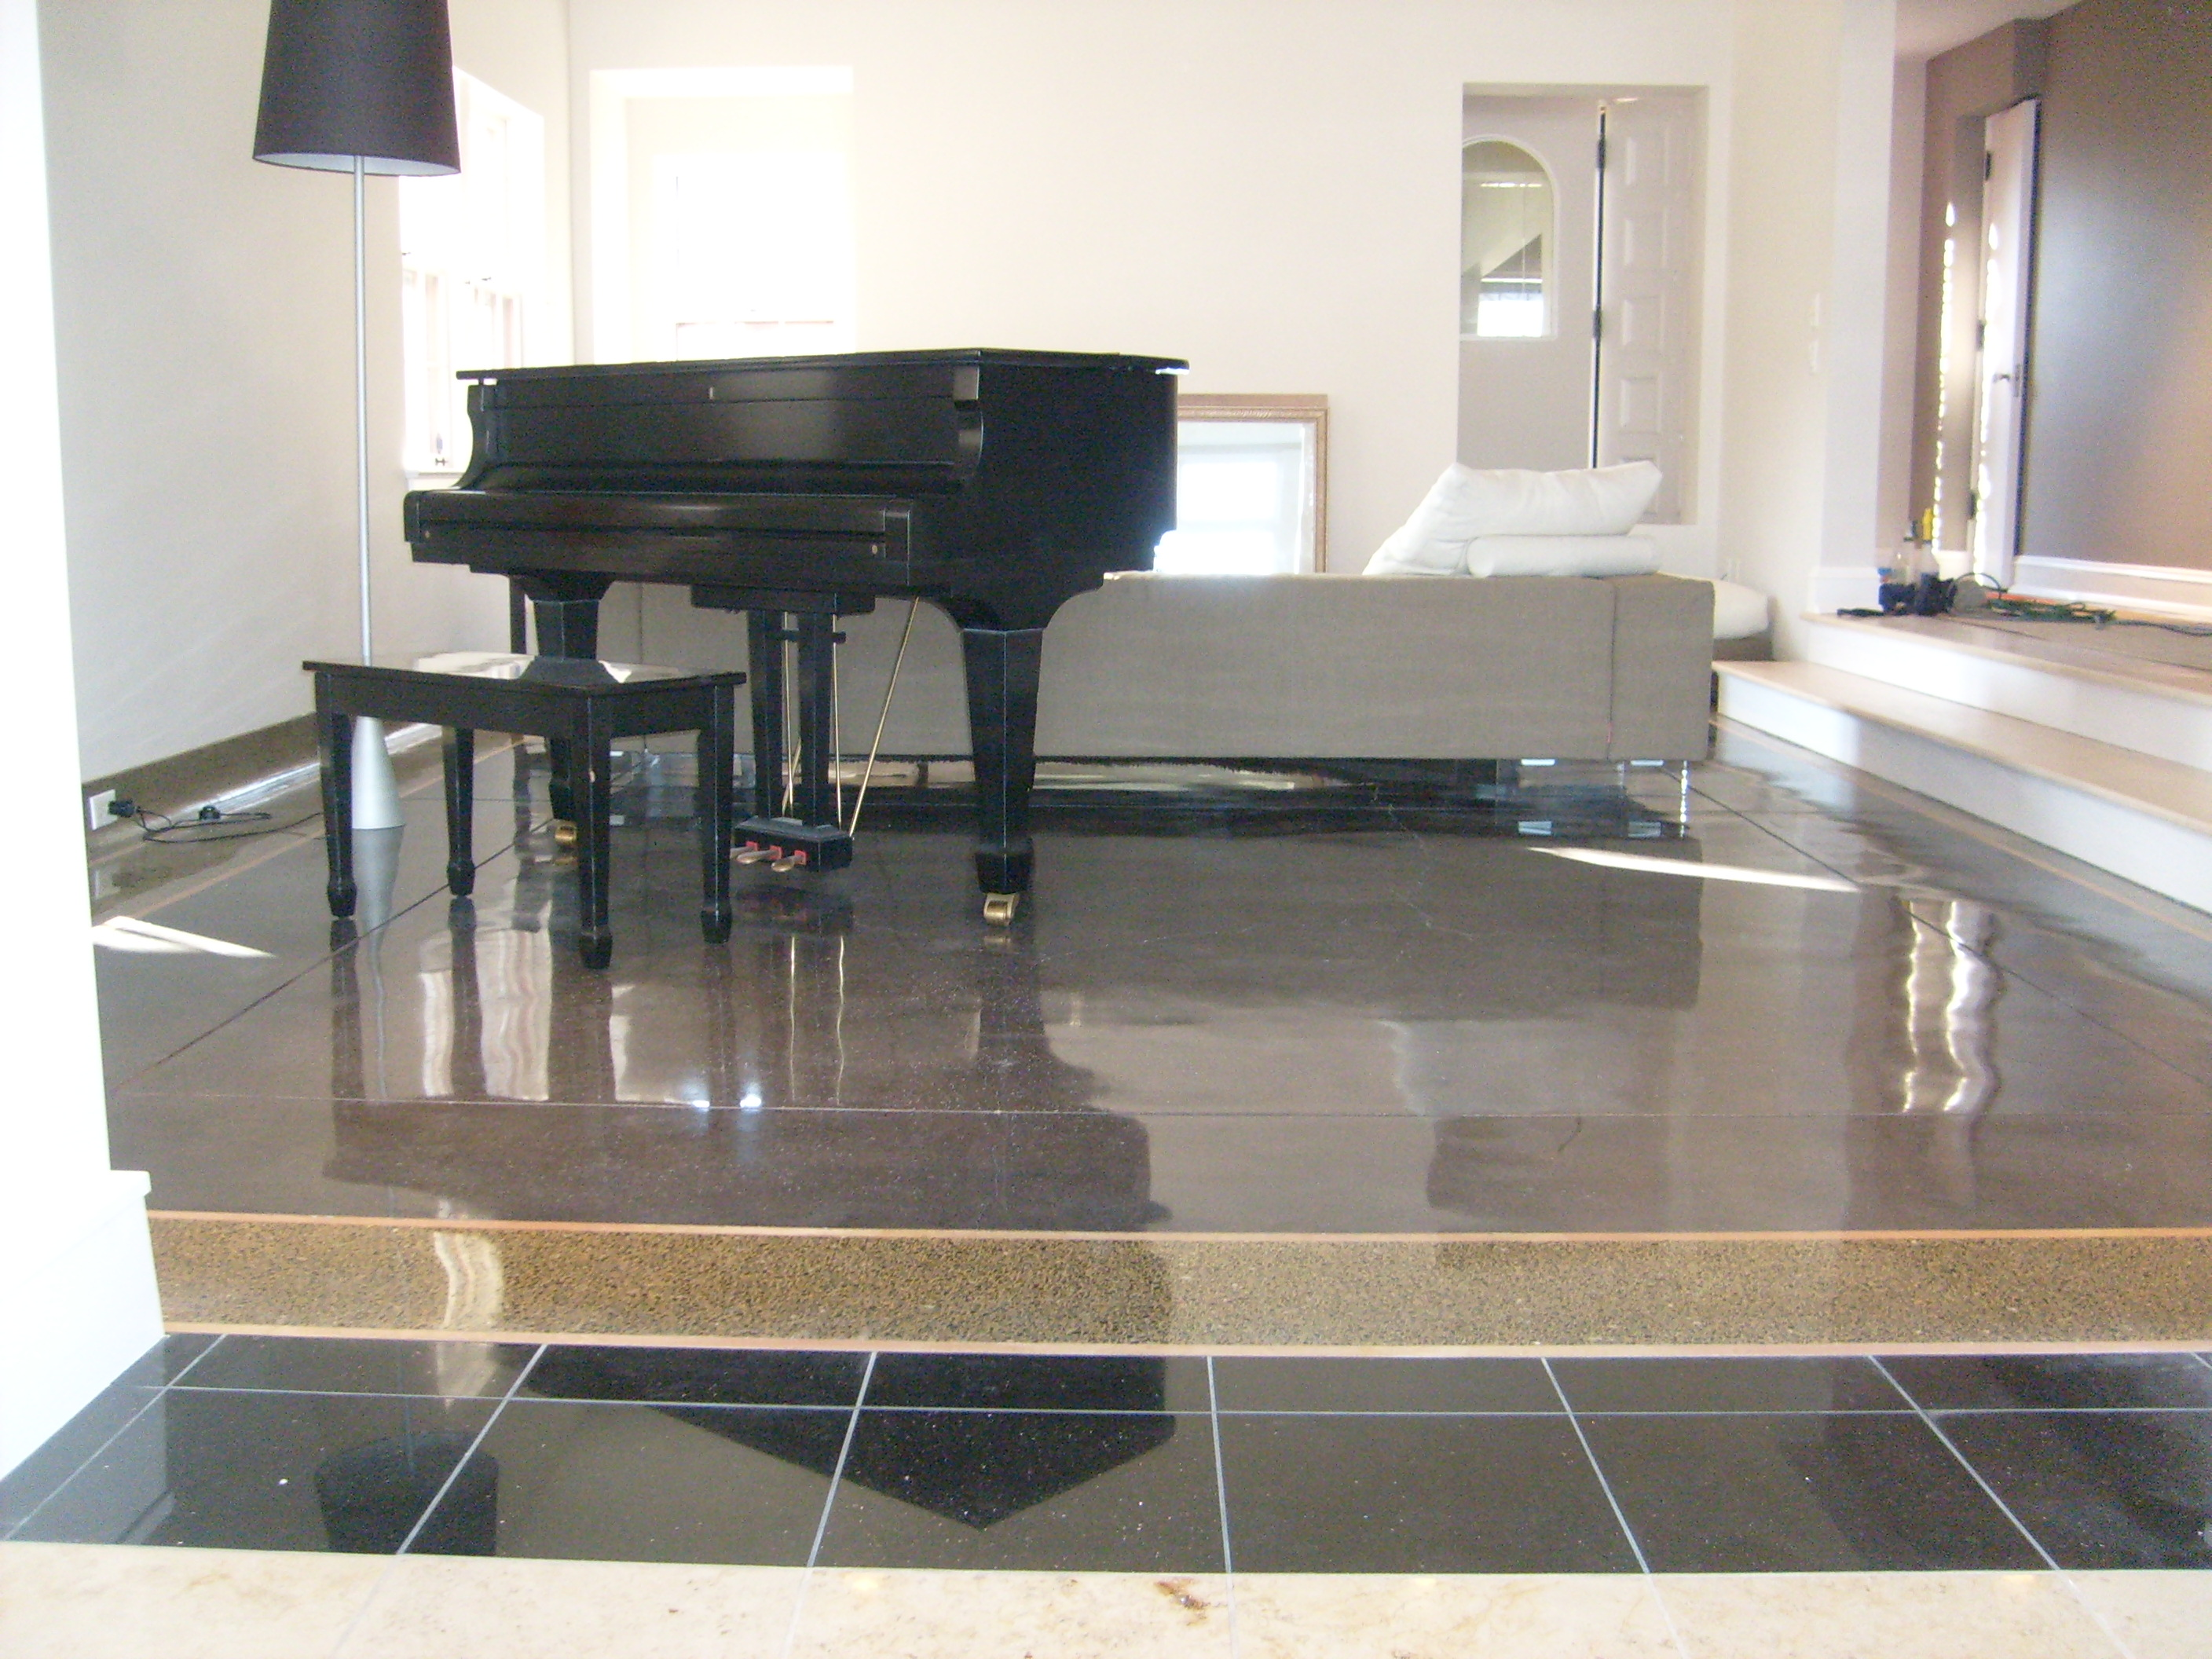 Polished Terrazzo Concrete Treatments Inc - How to maintain terrazzo floors